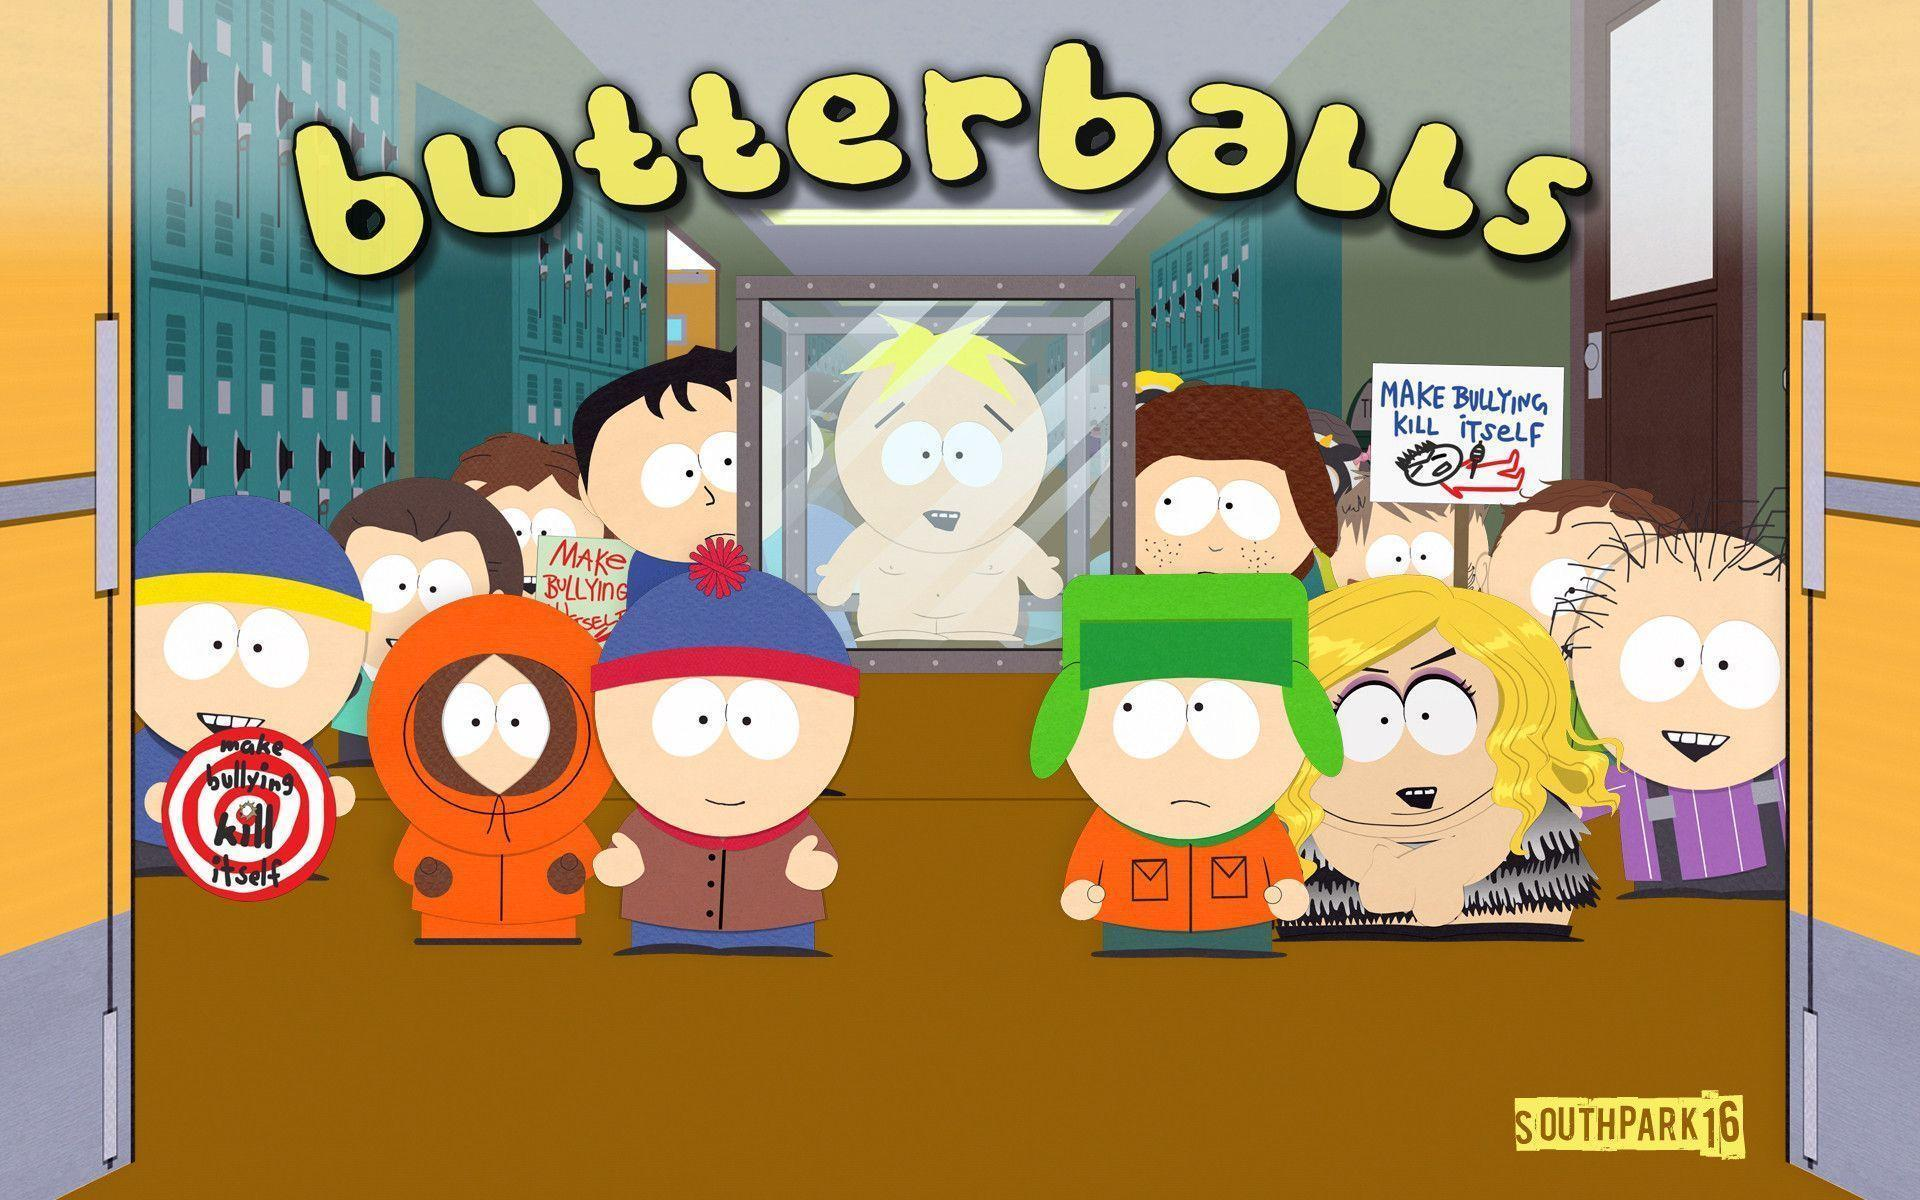 Funny South Park Wallpapers - Wallpaper Cave